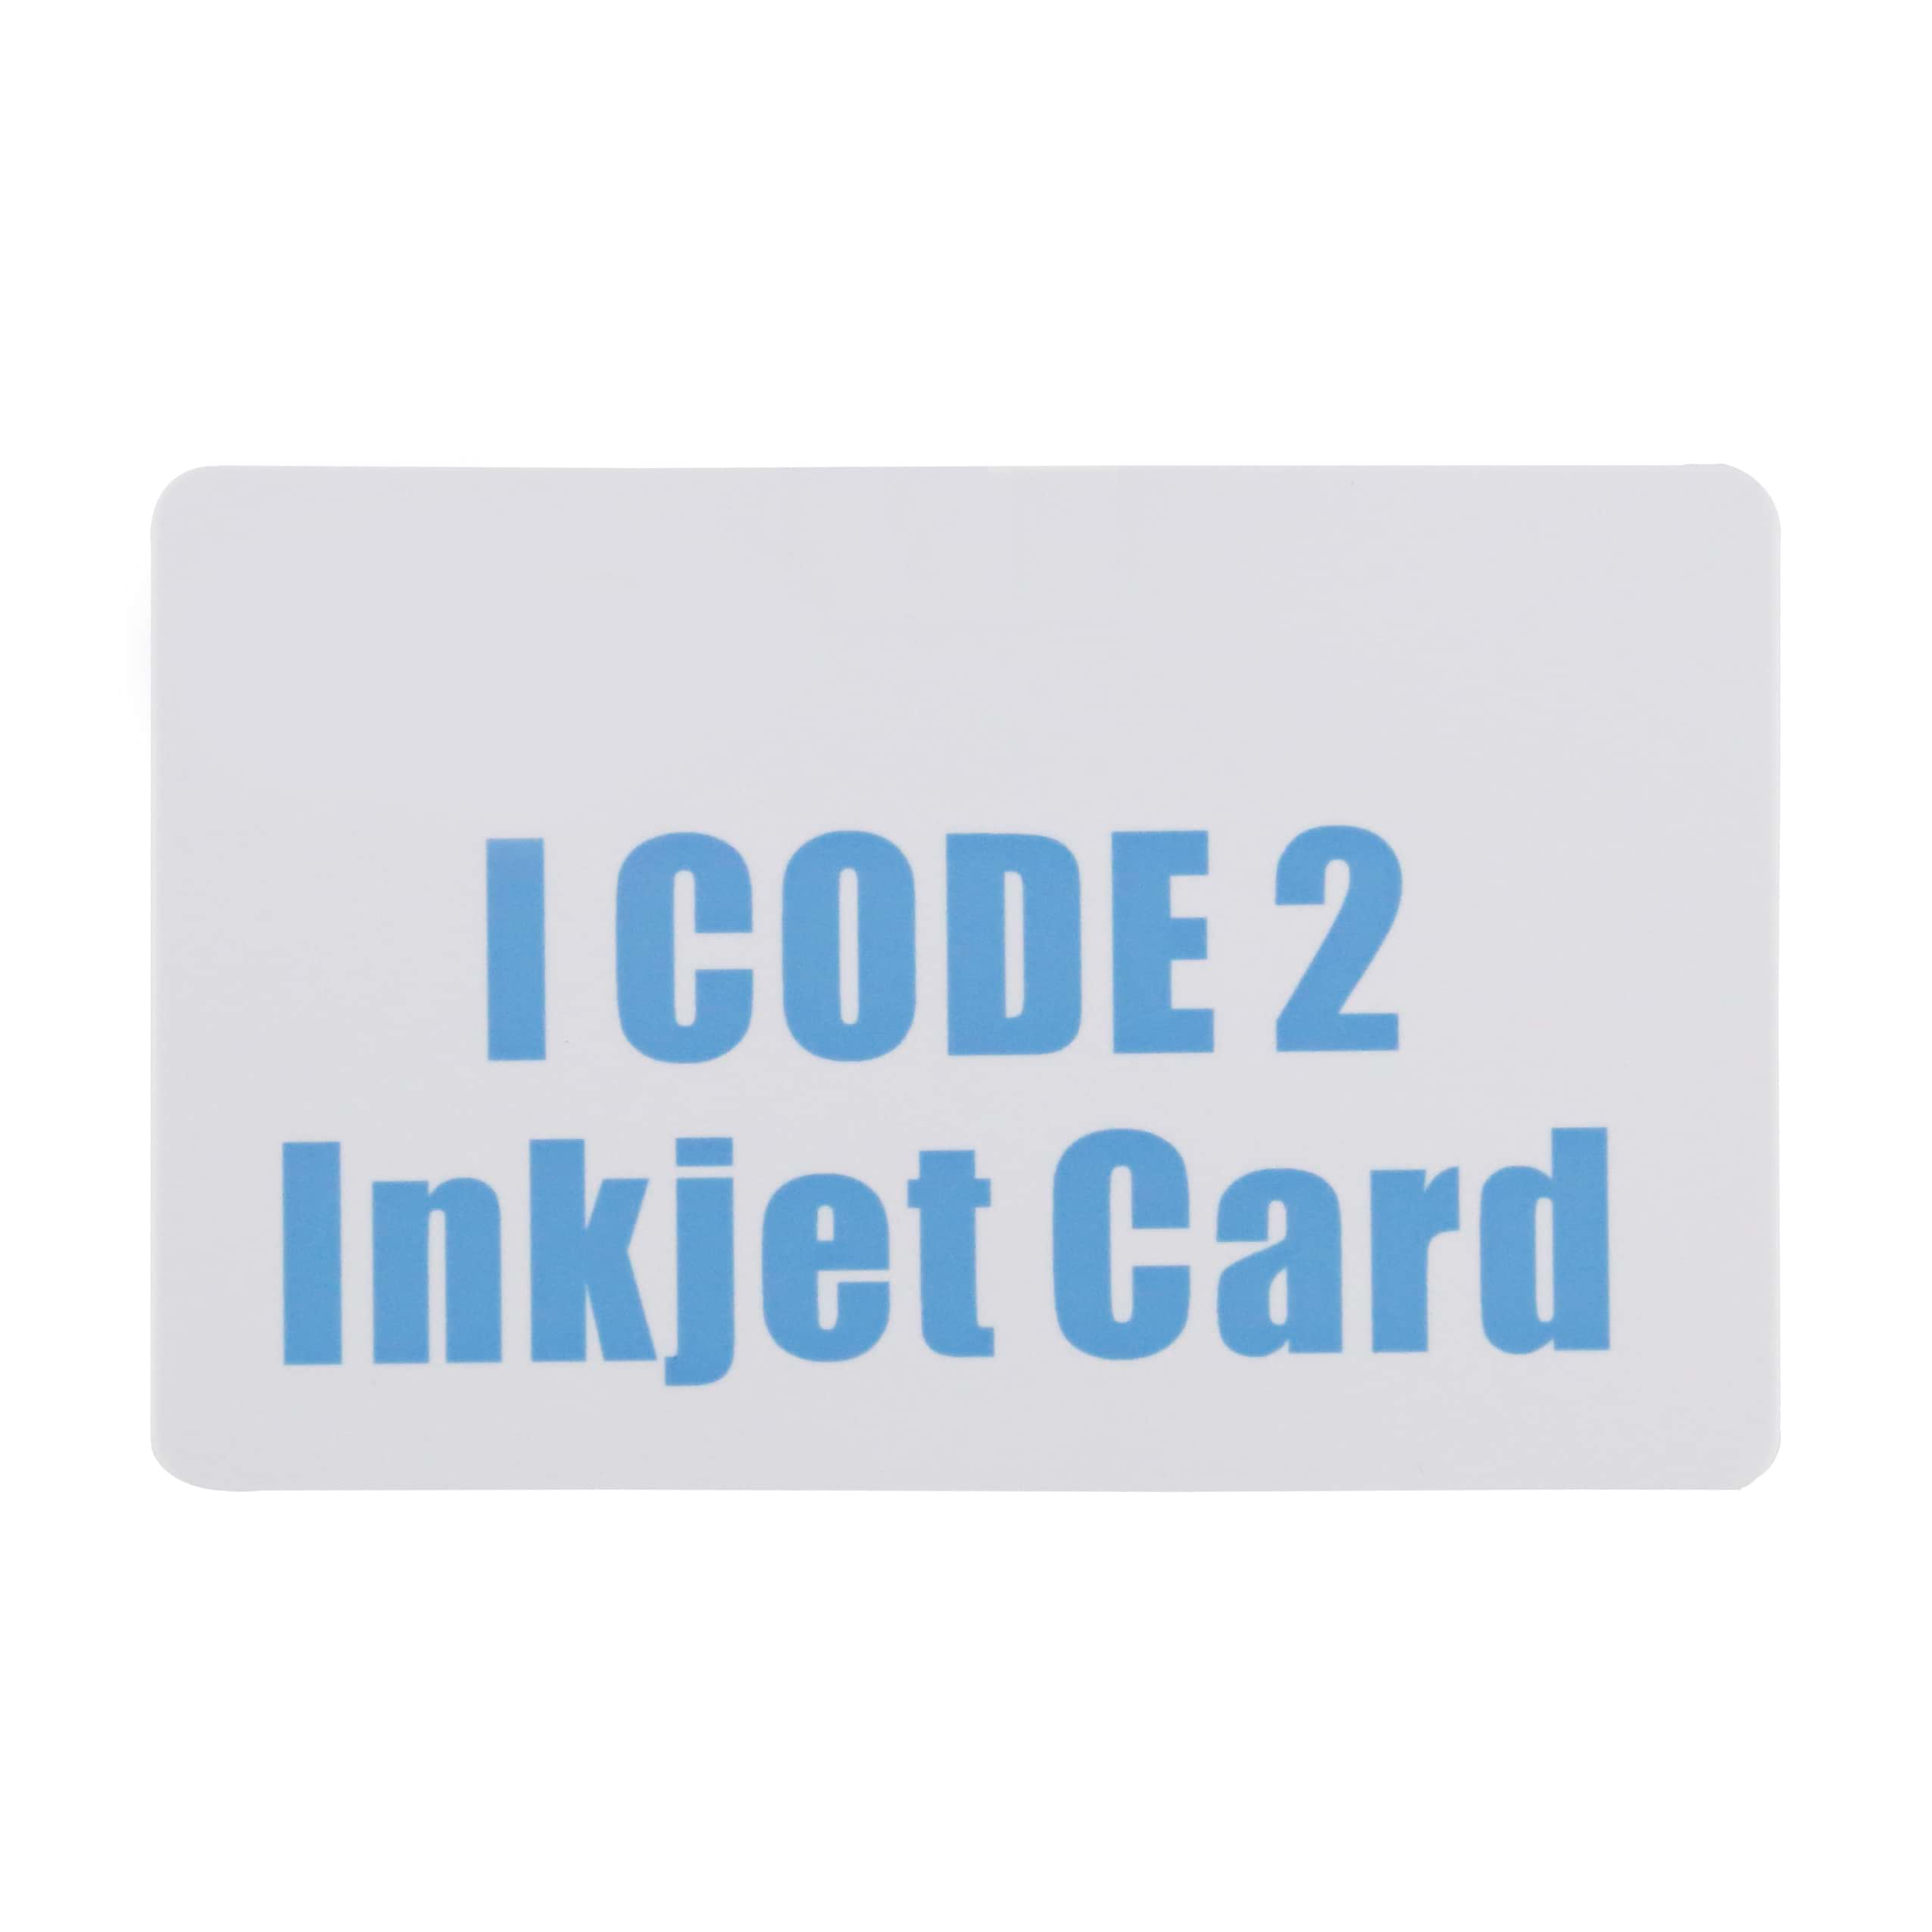 ICODE 2 INKJET CARD From Xinyetong